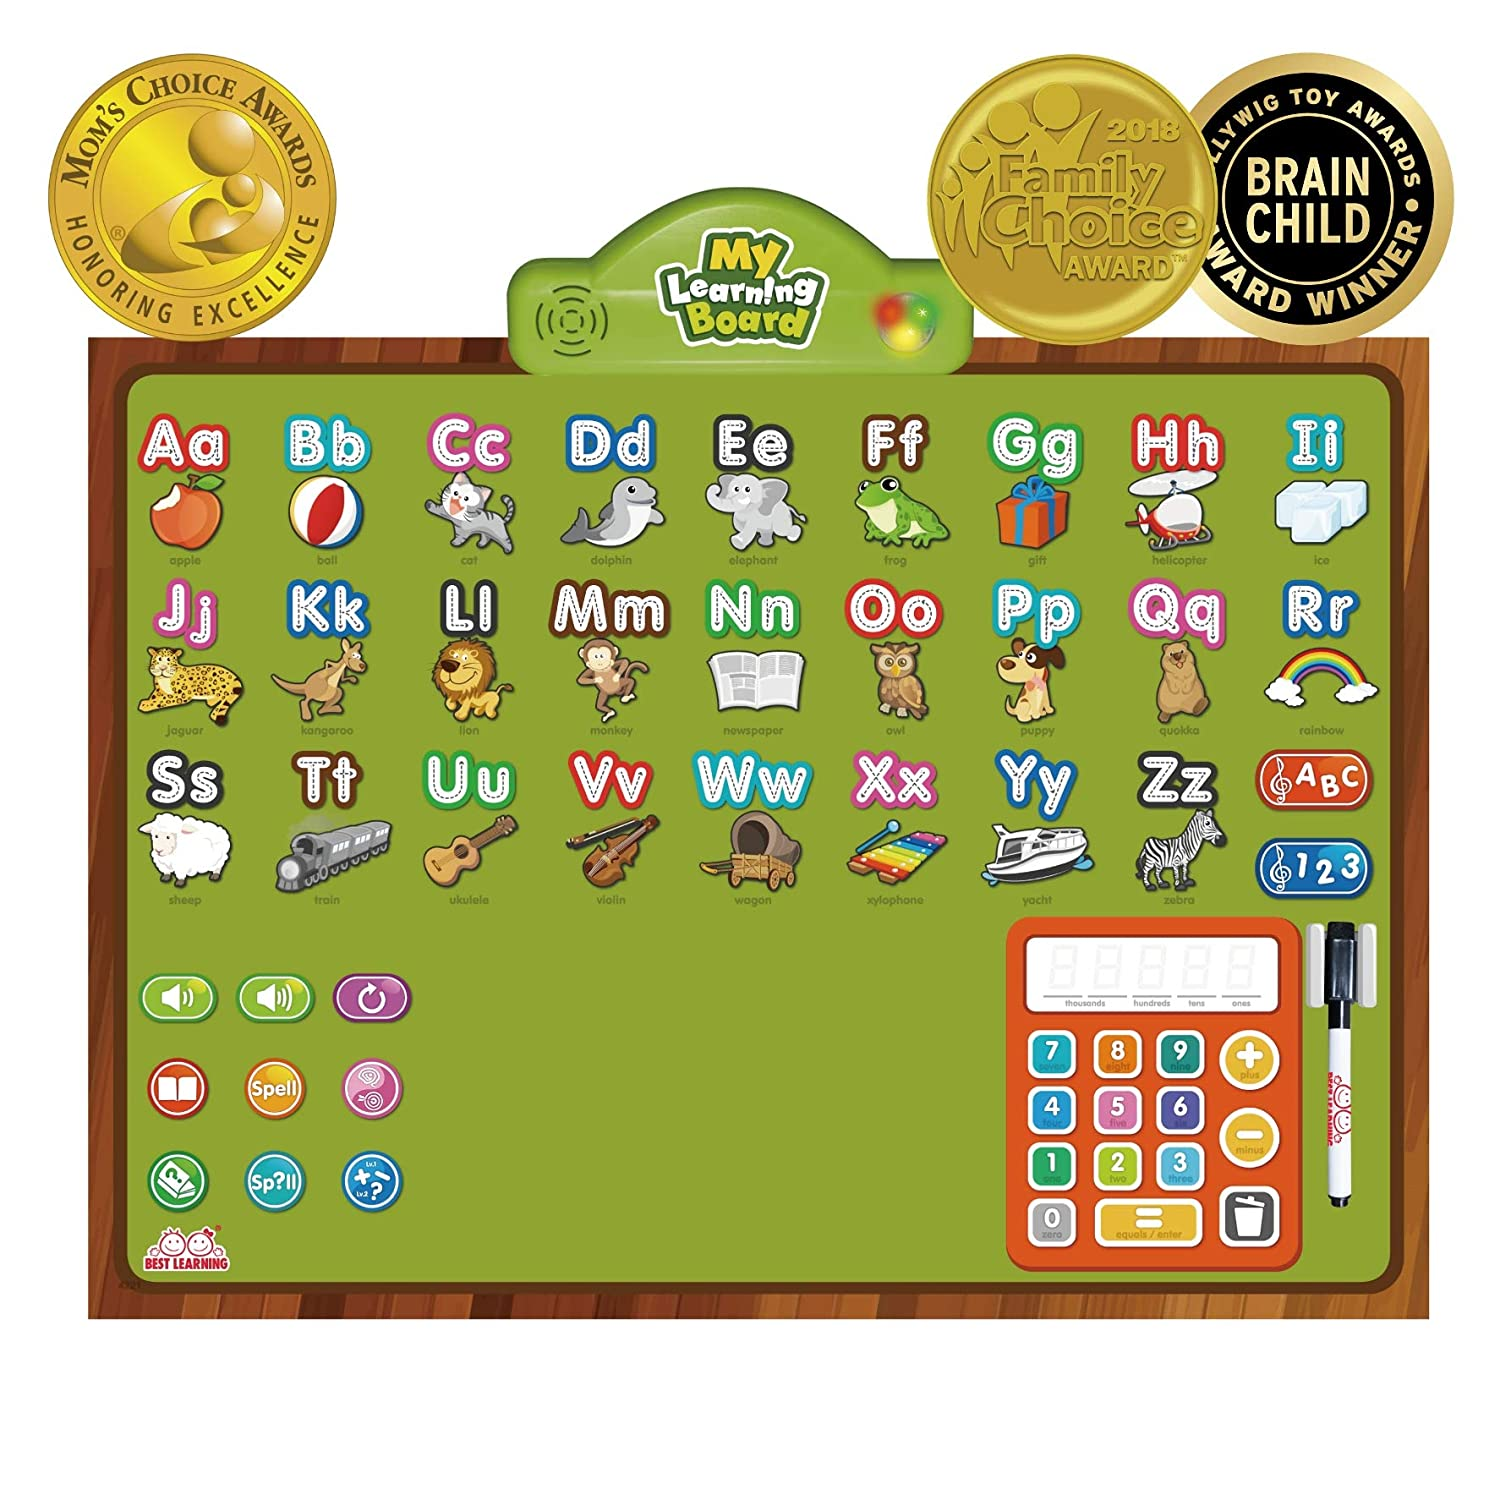 BEST LEARNING i Poster My Learning Board Interactive Talking Educational Poster for Wall Toy to Learn ABC Numbers Math Spelling Write Letters Quiz for Toddlers Kids